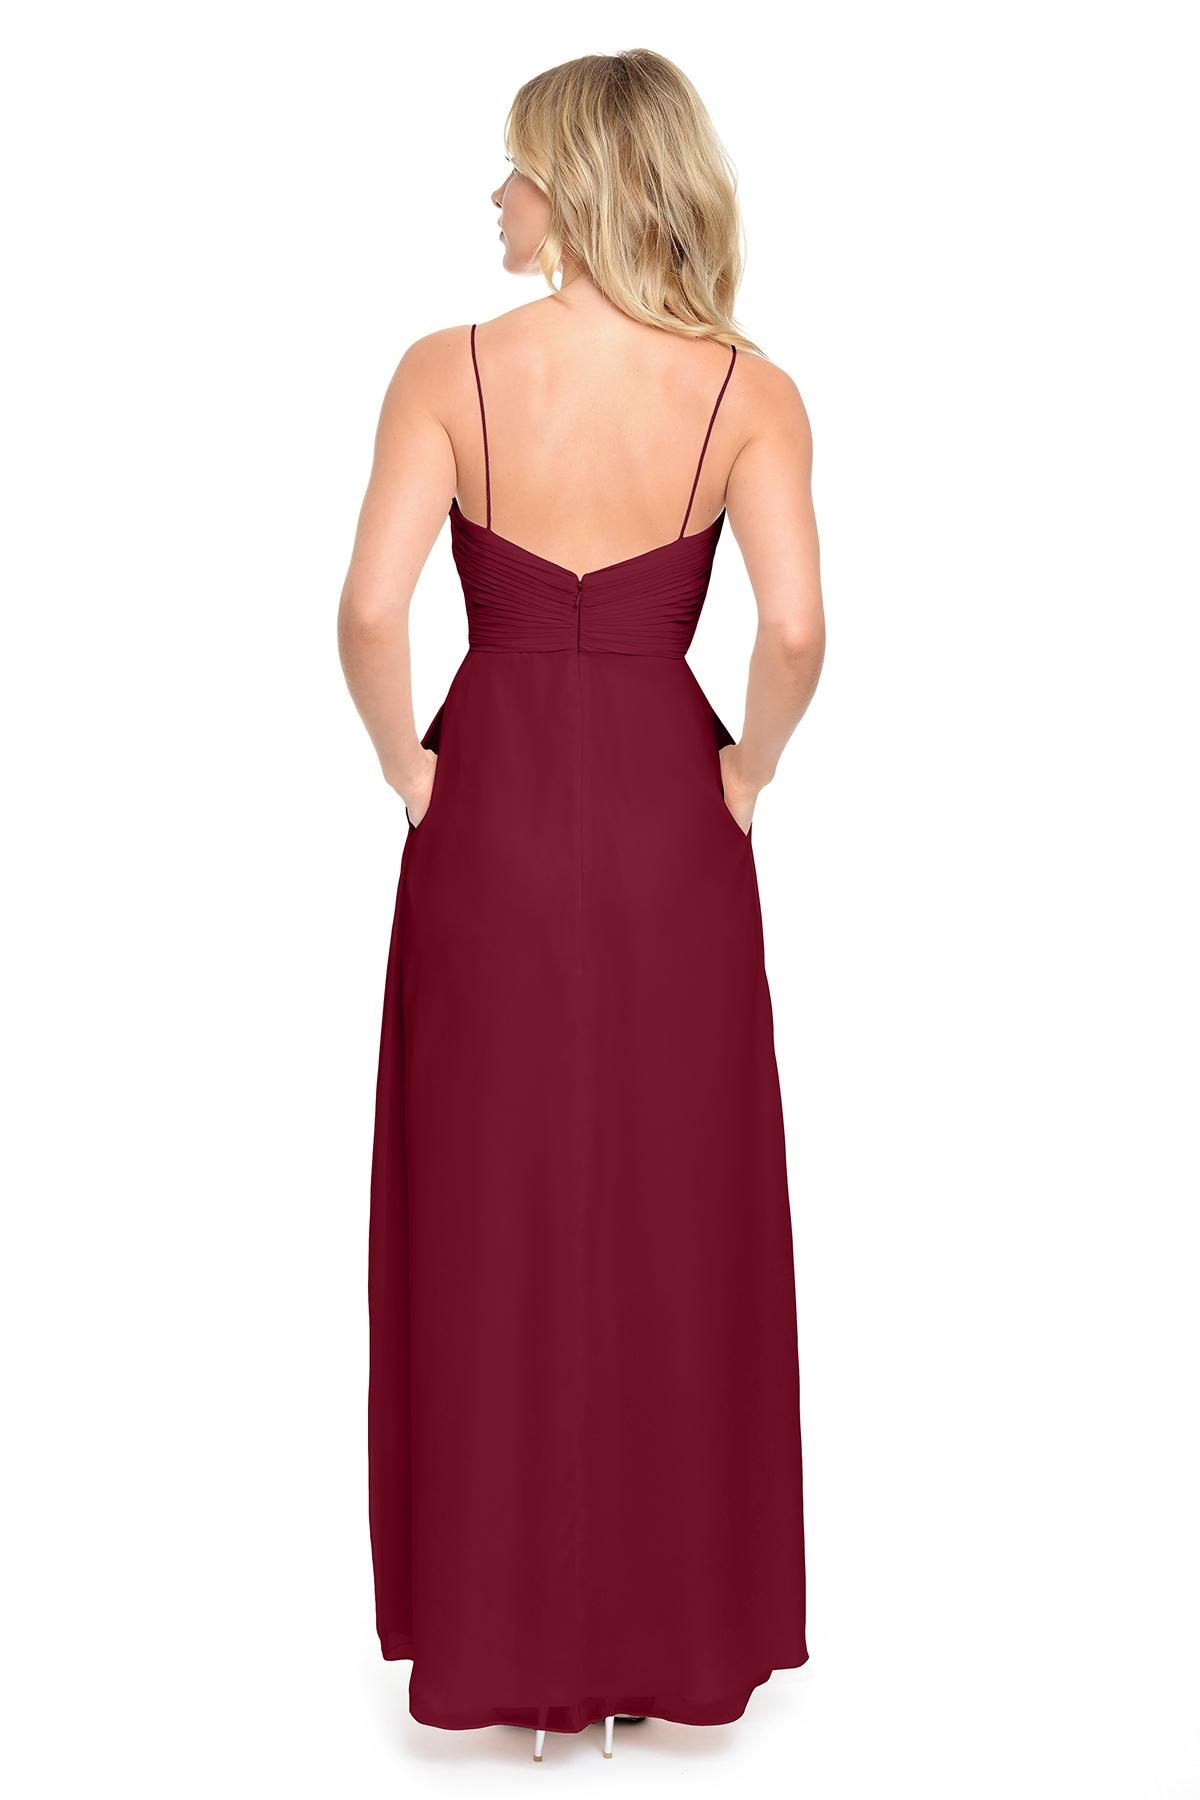 Long wedding guest dresses  Cheap  WineBlueBurgundy Bridesmaid Dresses Long Pleated